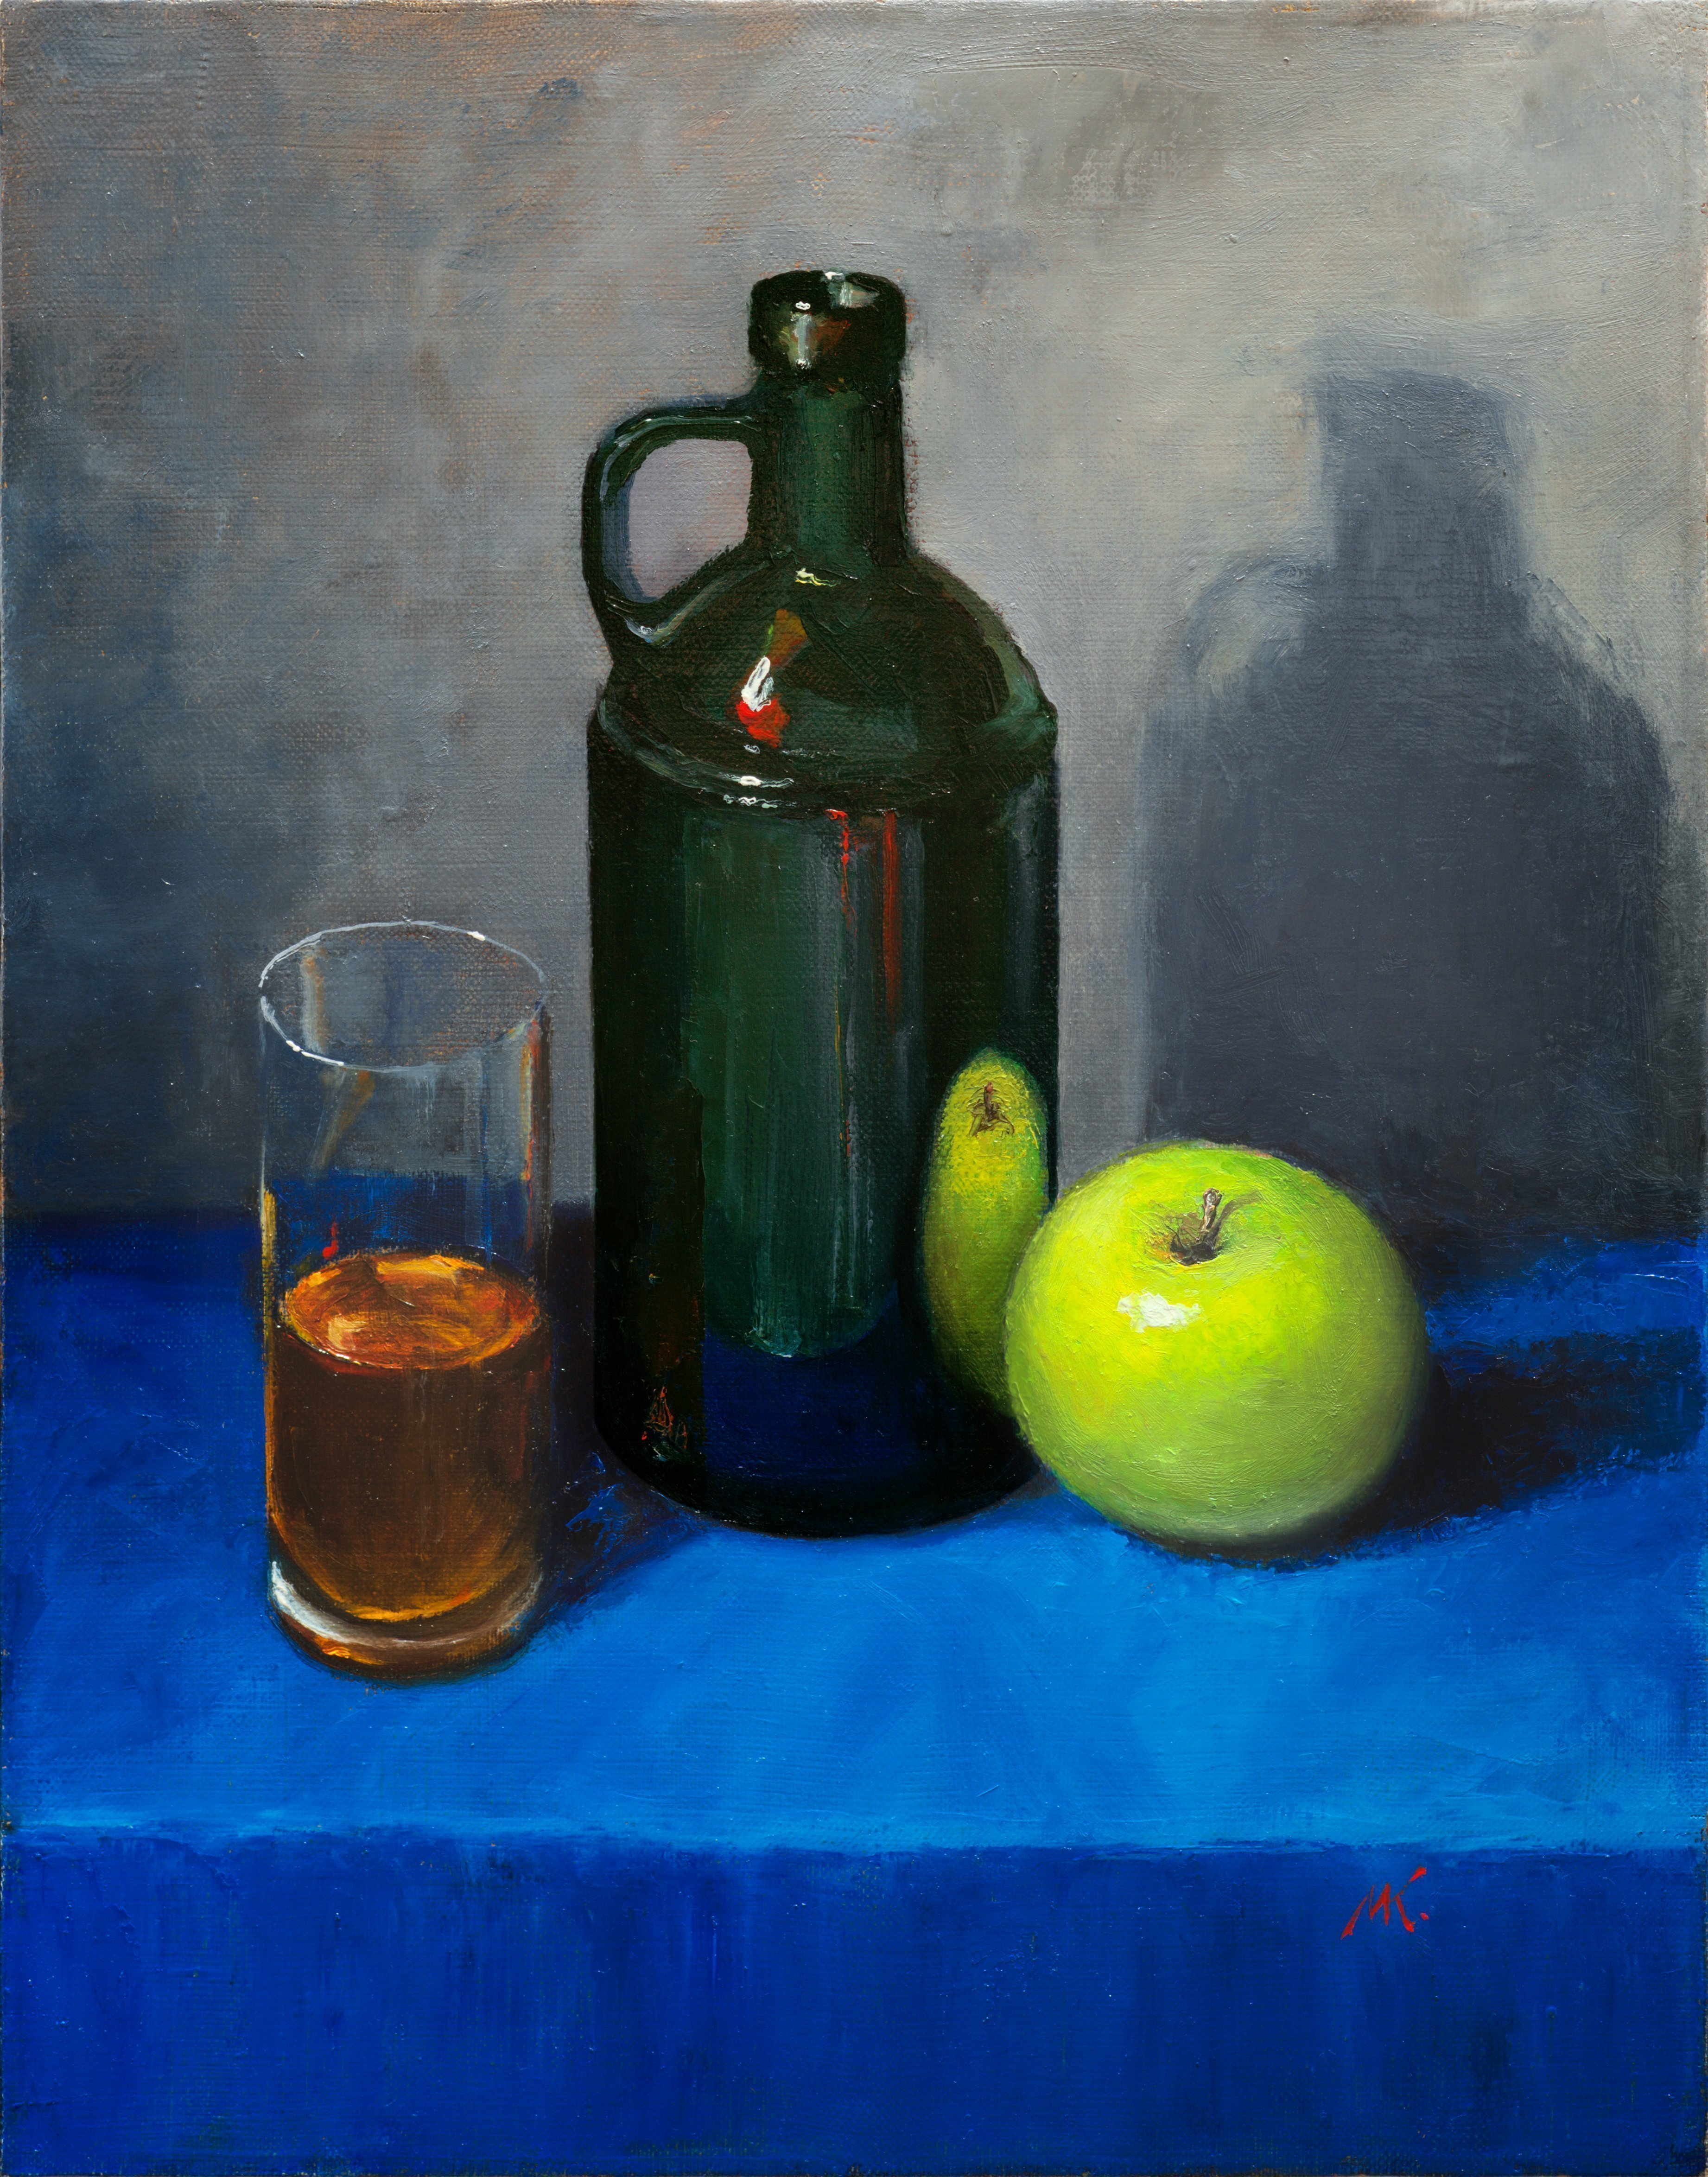 Mikhail Velavok; blue table, 2017, Original Painting Oil, 13.8 x 17.7 inches. Artwork description: 241 Original oil painting on canvas. The work is being sold unframed. The frame in the additional photo is an example only.apple, green apple, shadow, glass, bottle, bottle glass, green glass, dark, blue...